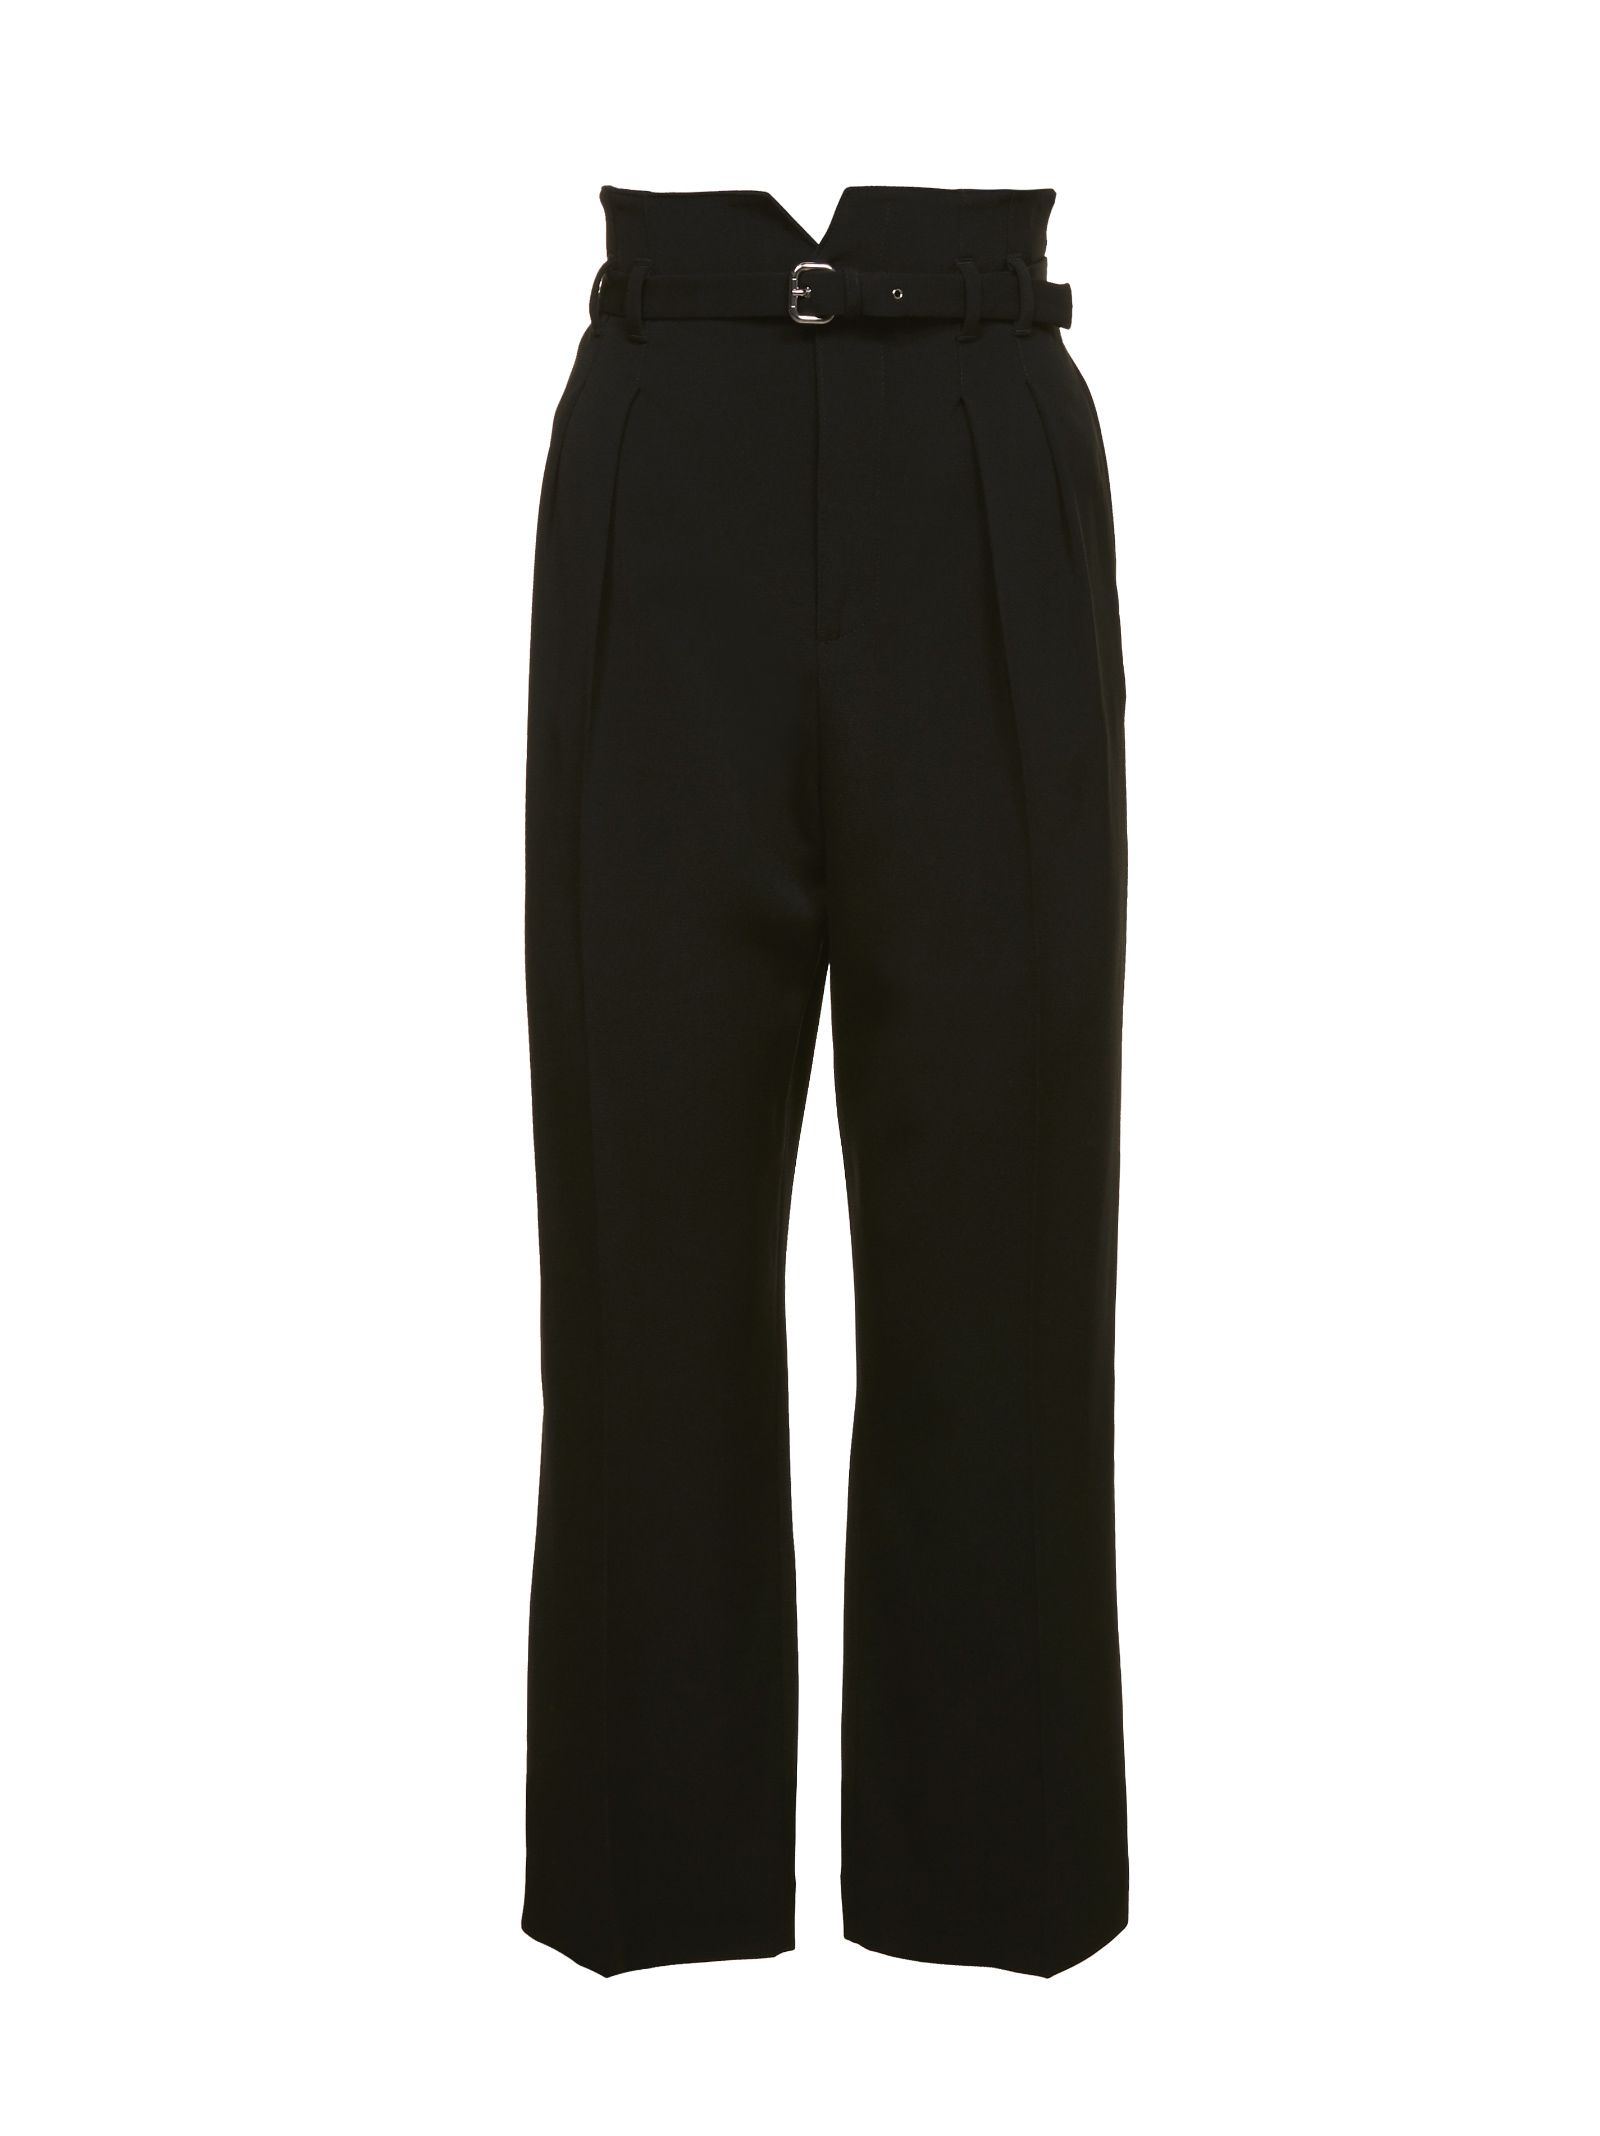 Red Valentino Buckled Cropped Trousers